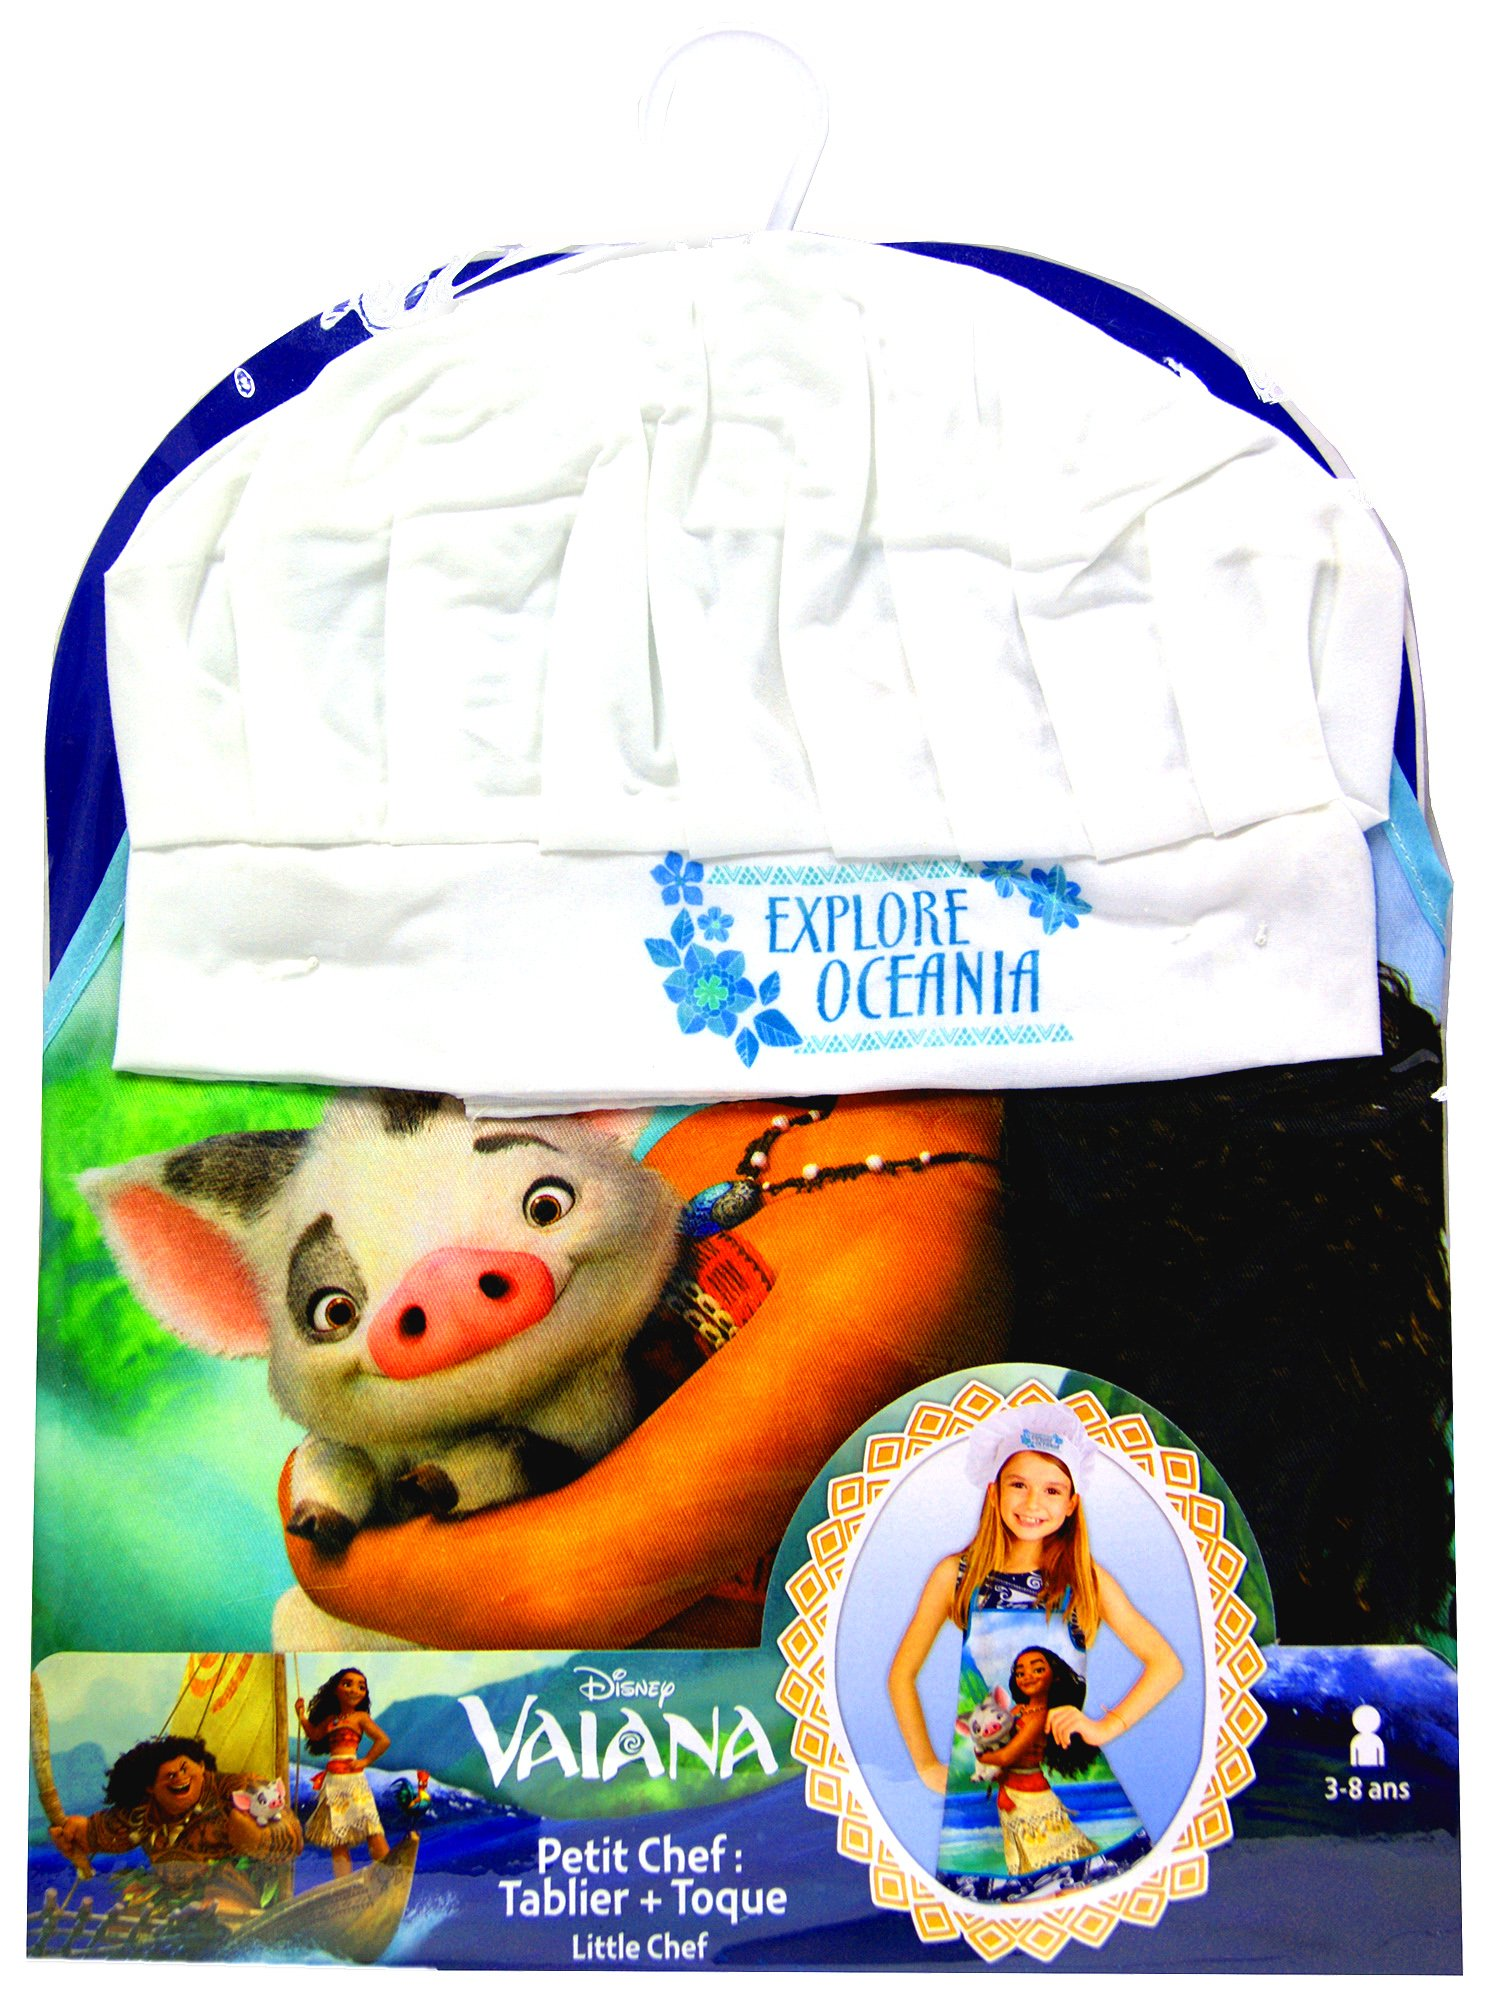 Disney Moana/Vaiana Apron and Chef's Hats Set, Officially Licensed. by Disney (Image #3)